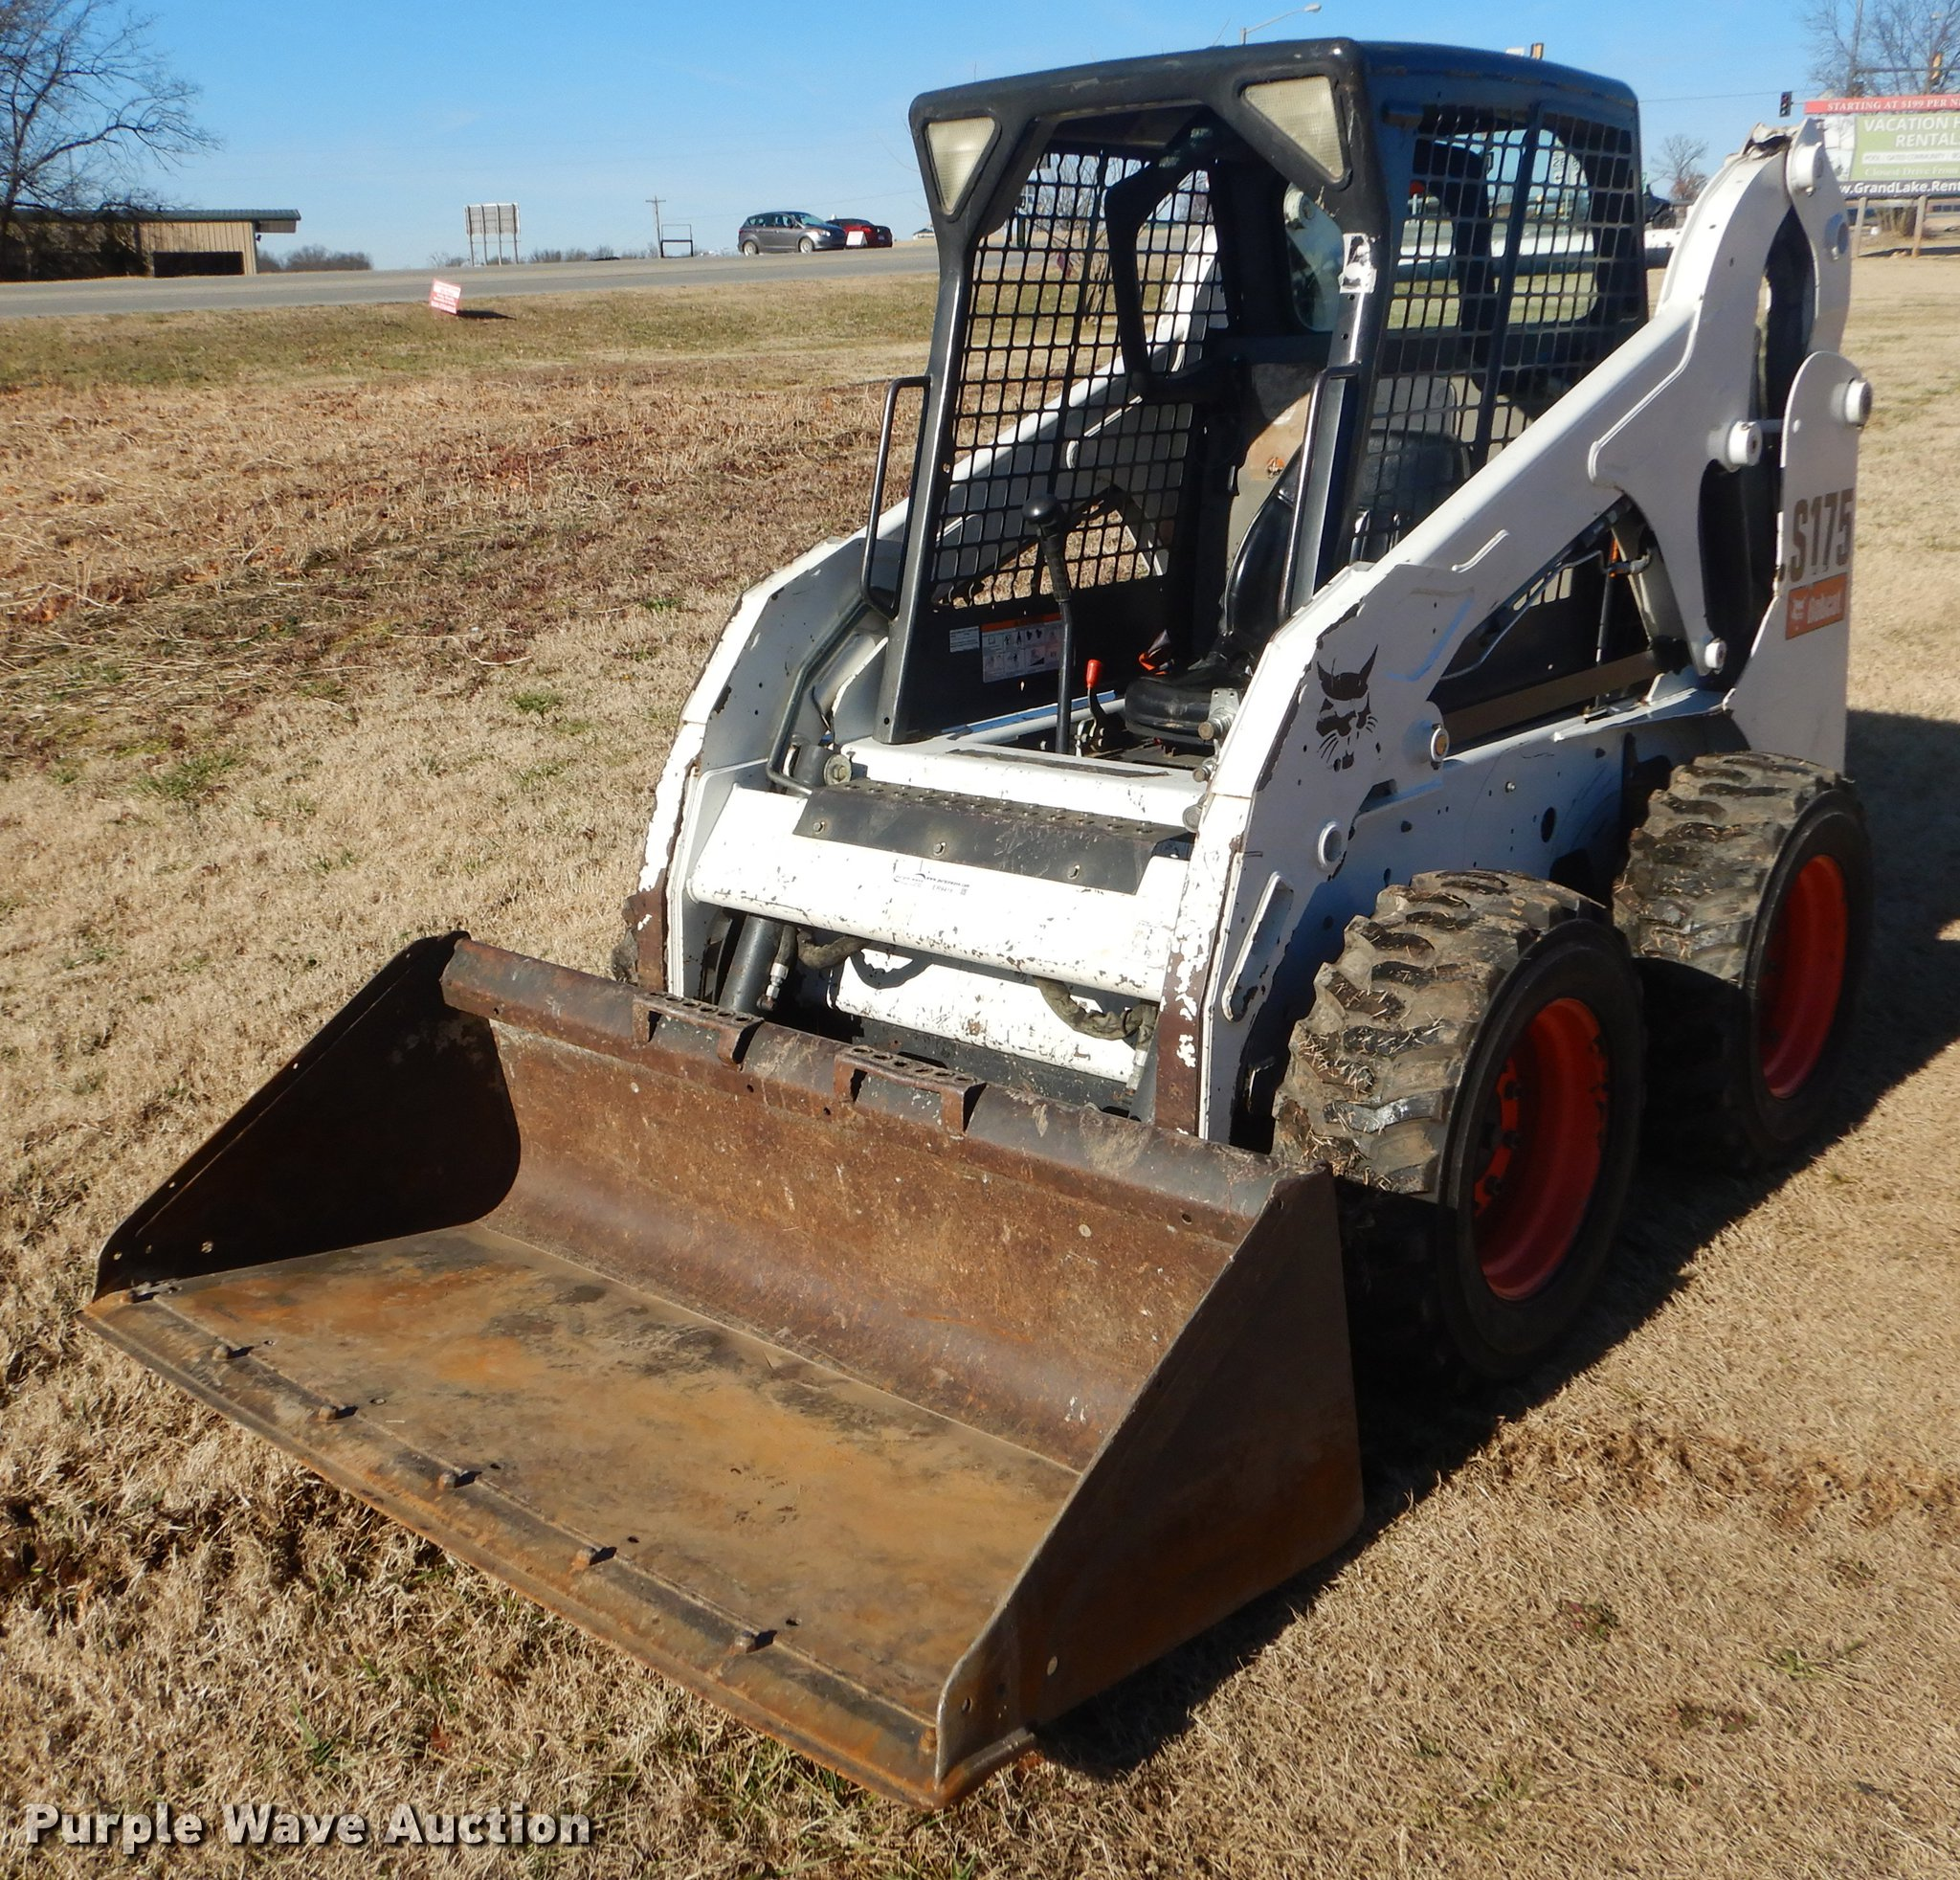 2012 Bobcat S175 skid steer | Item ER9416 | Thursday Februar